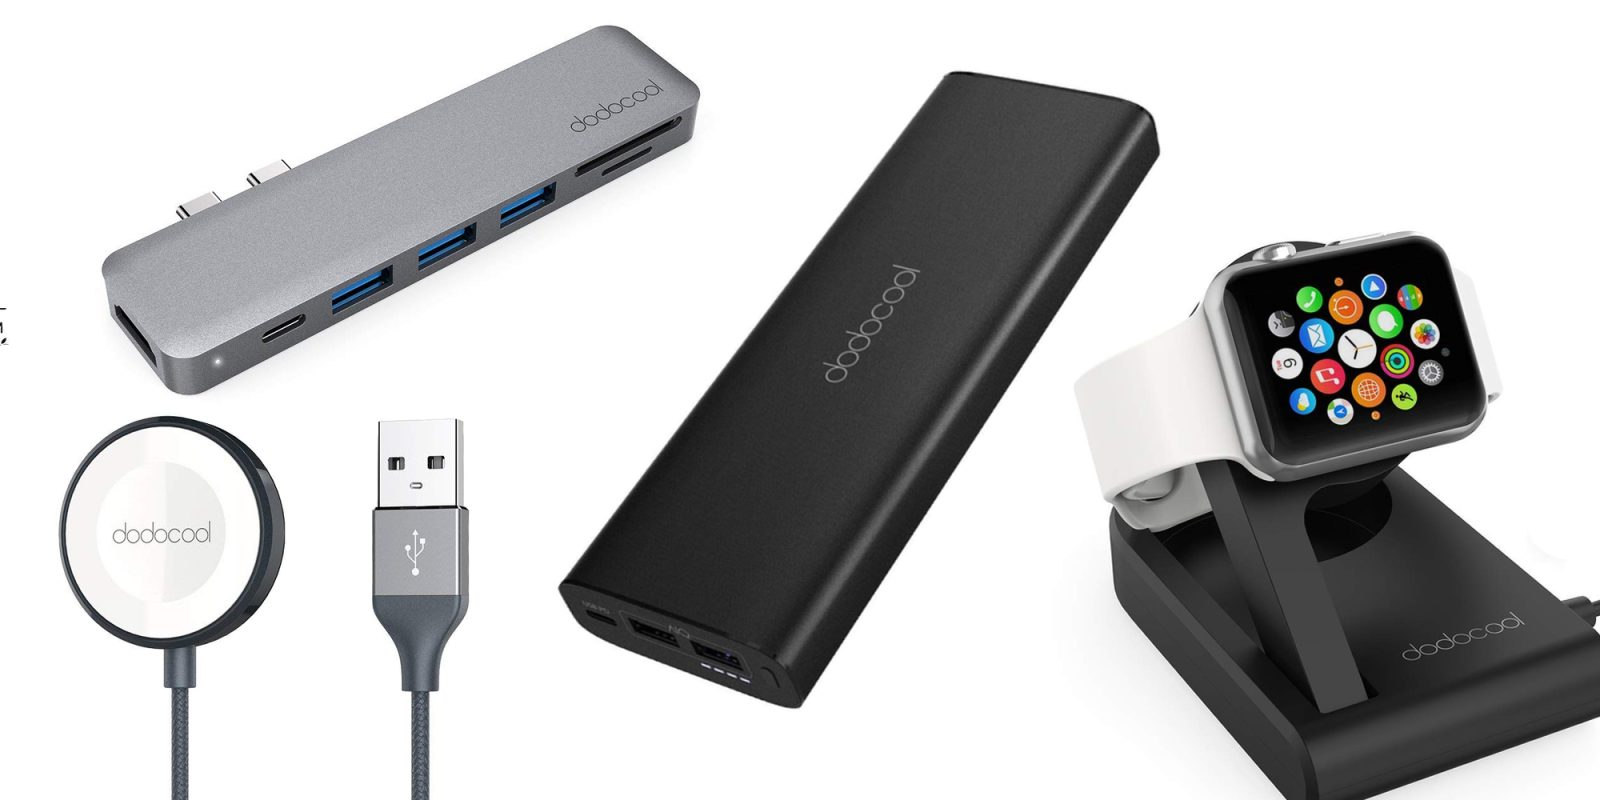 Kick off Cyber Monday with dodocool charging cables, USB-C hubs and more from $21 shipped